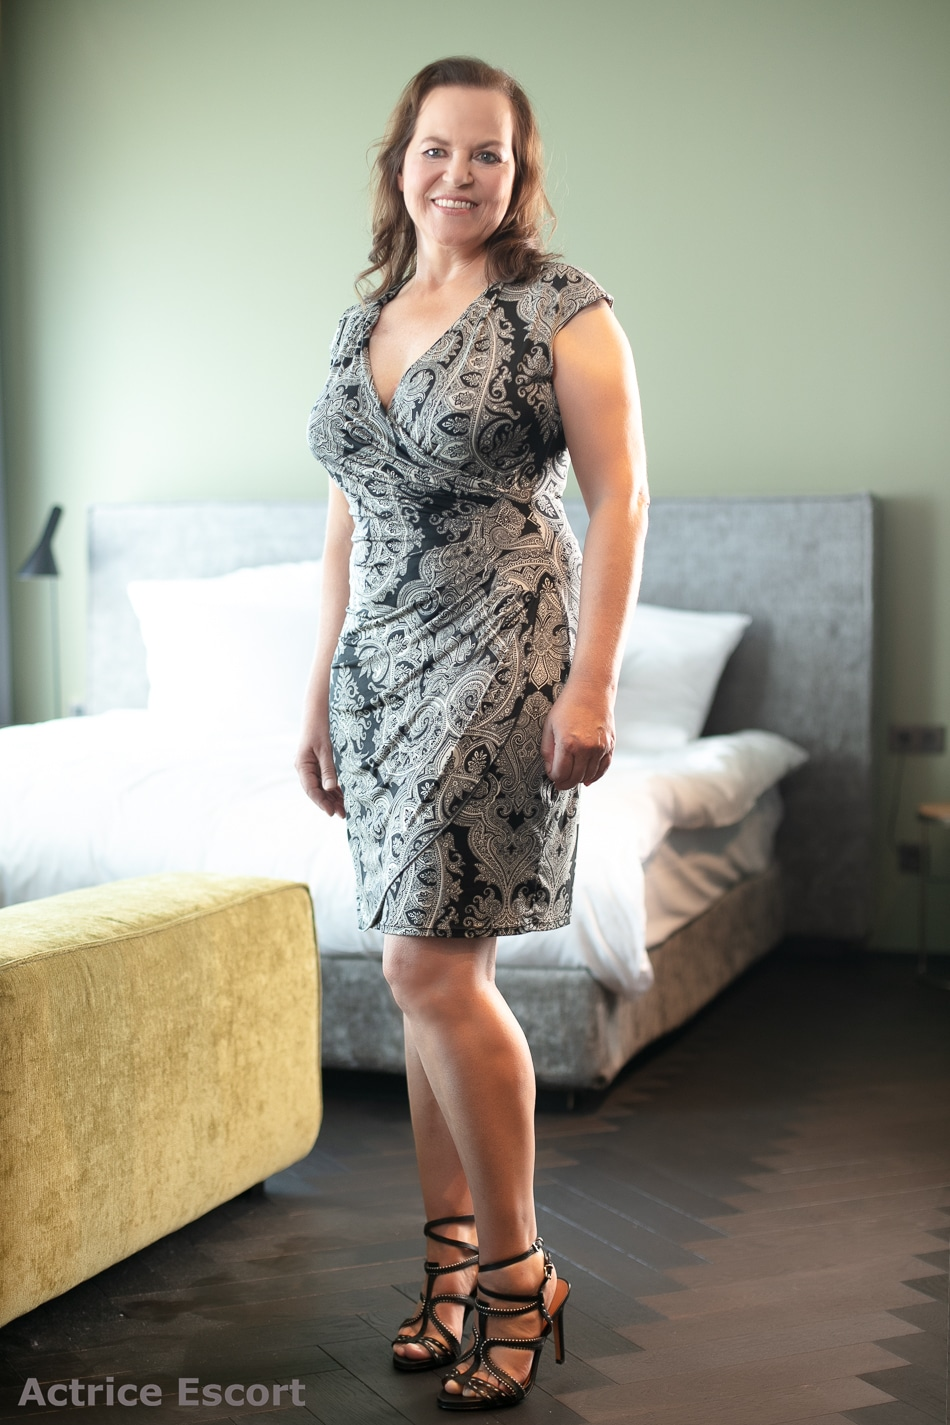 Bettina Escortservice Duesseldorf (6)